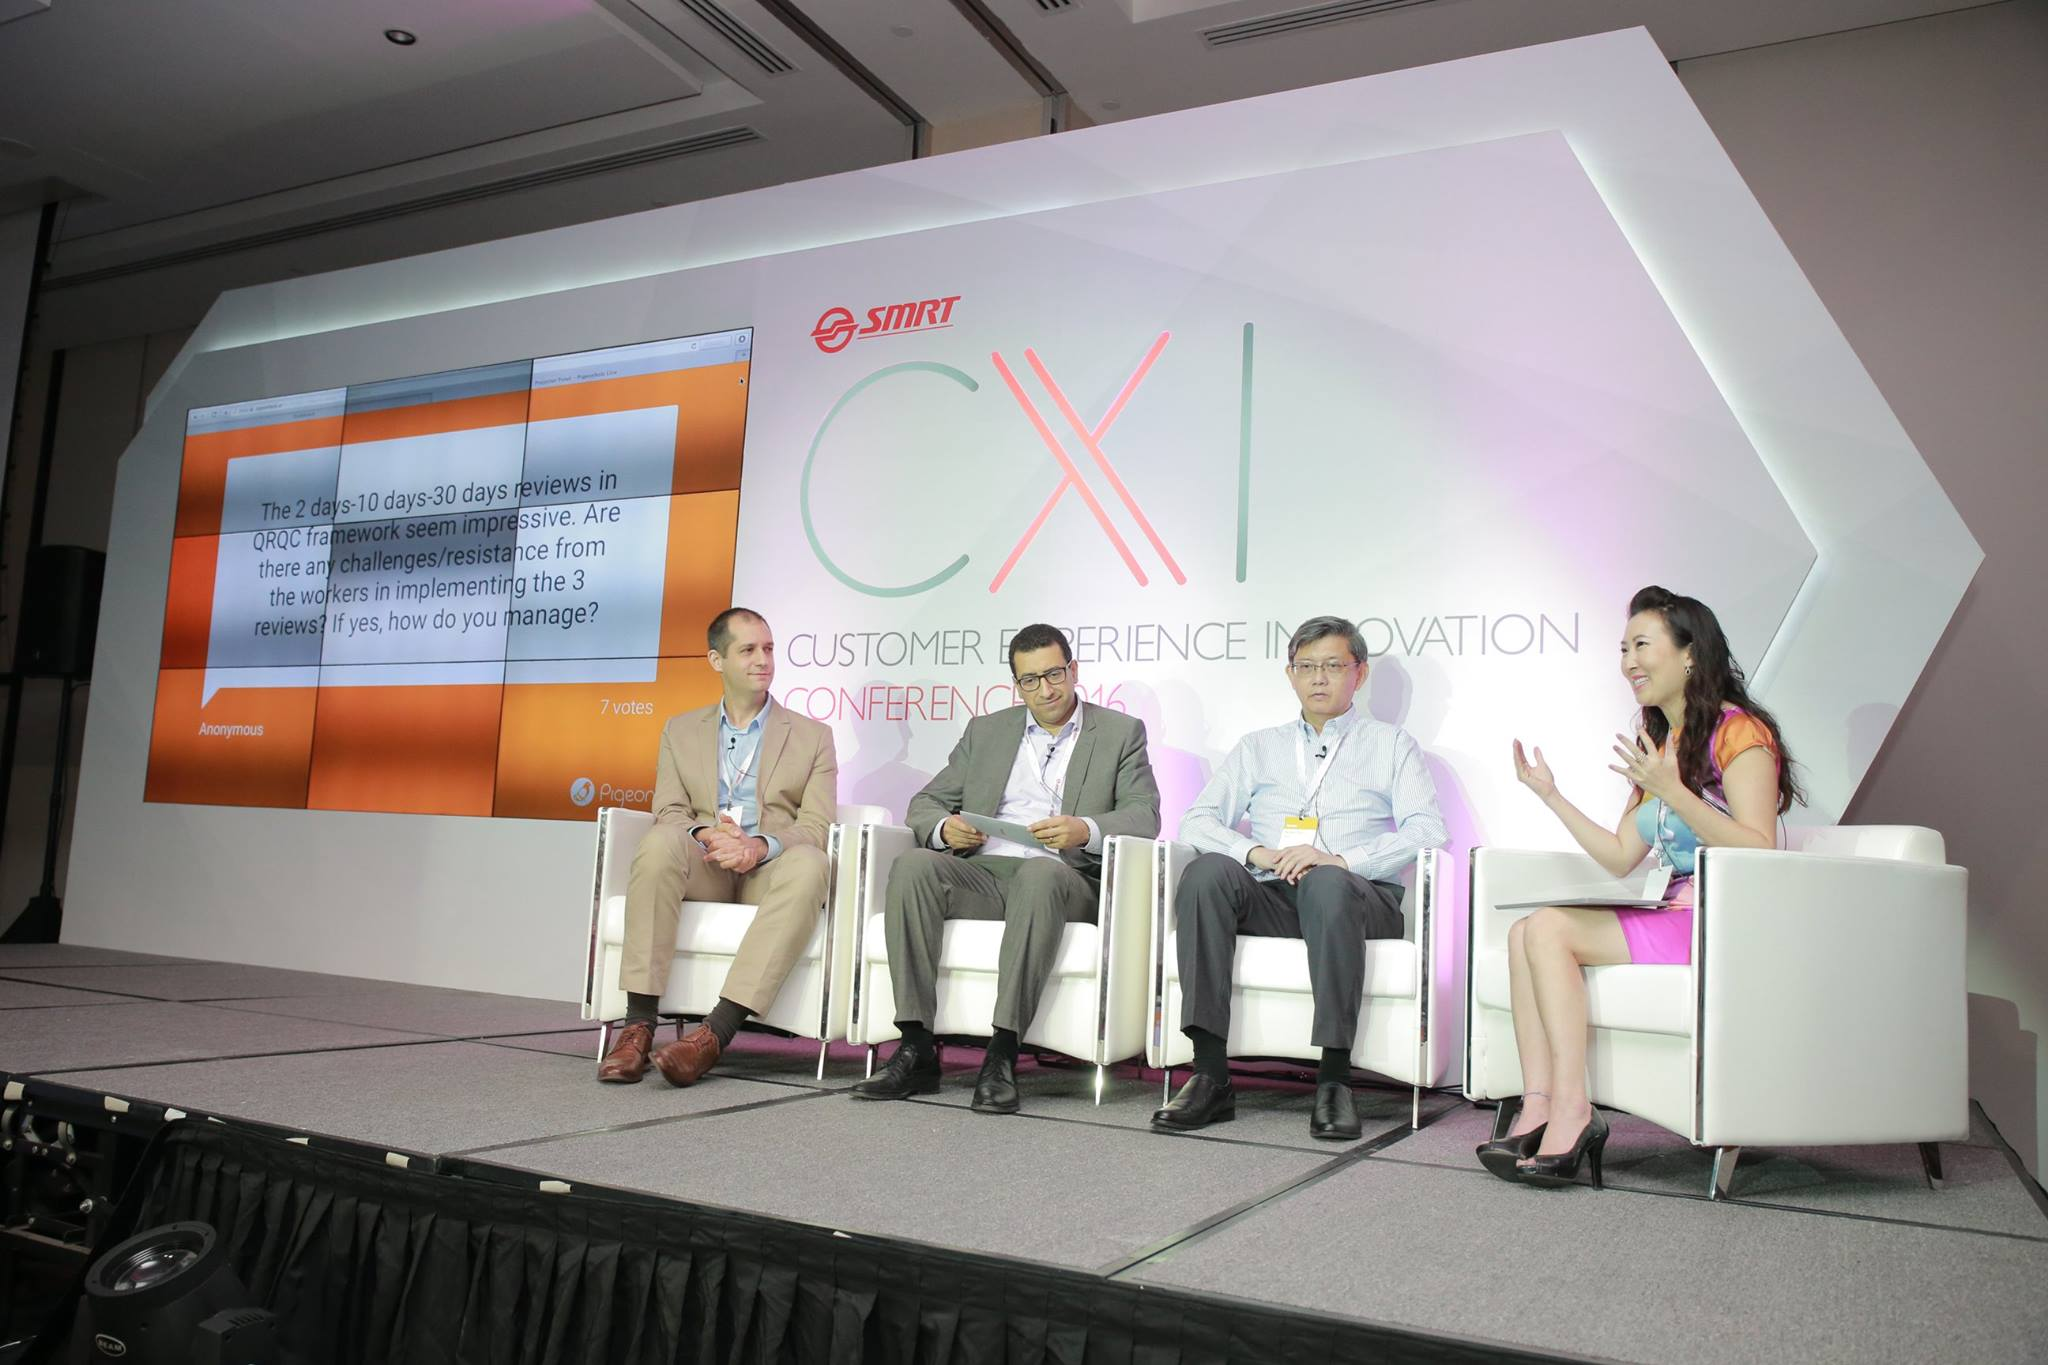 So-Young moderating a panel discussion with other experts and thought leaders